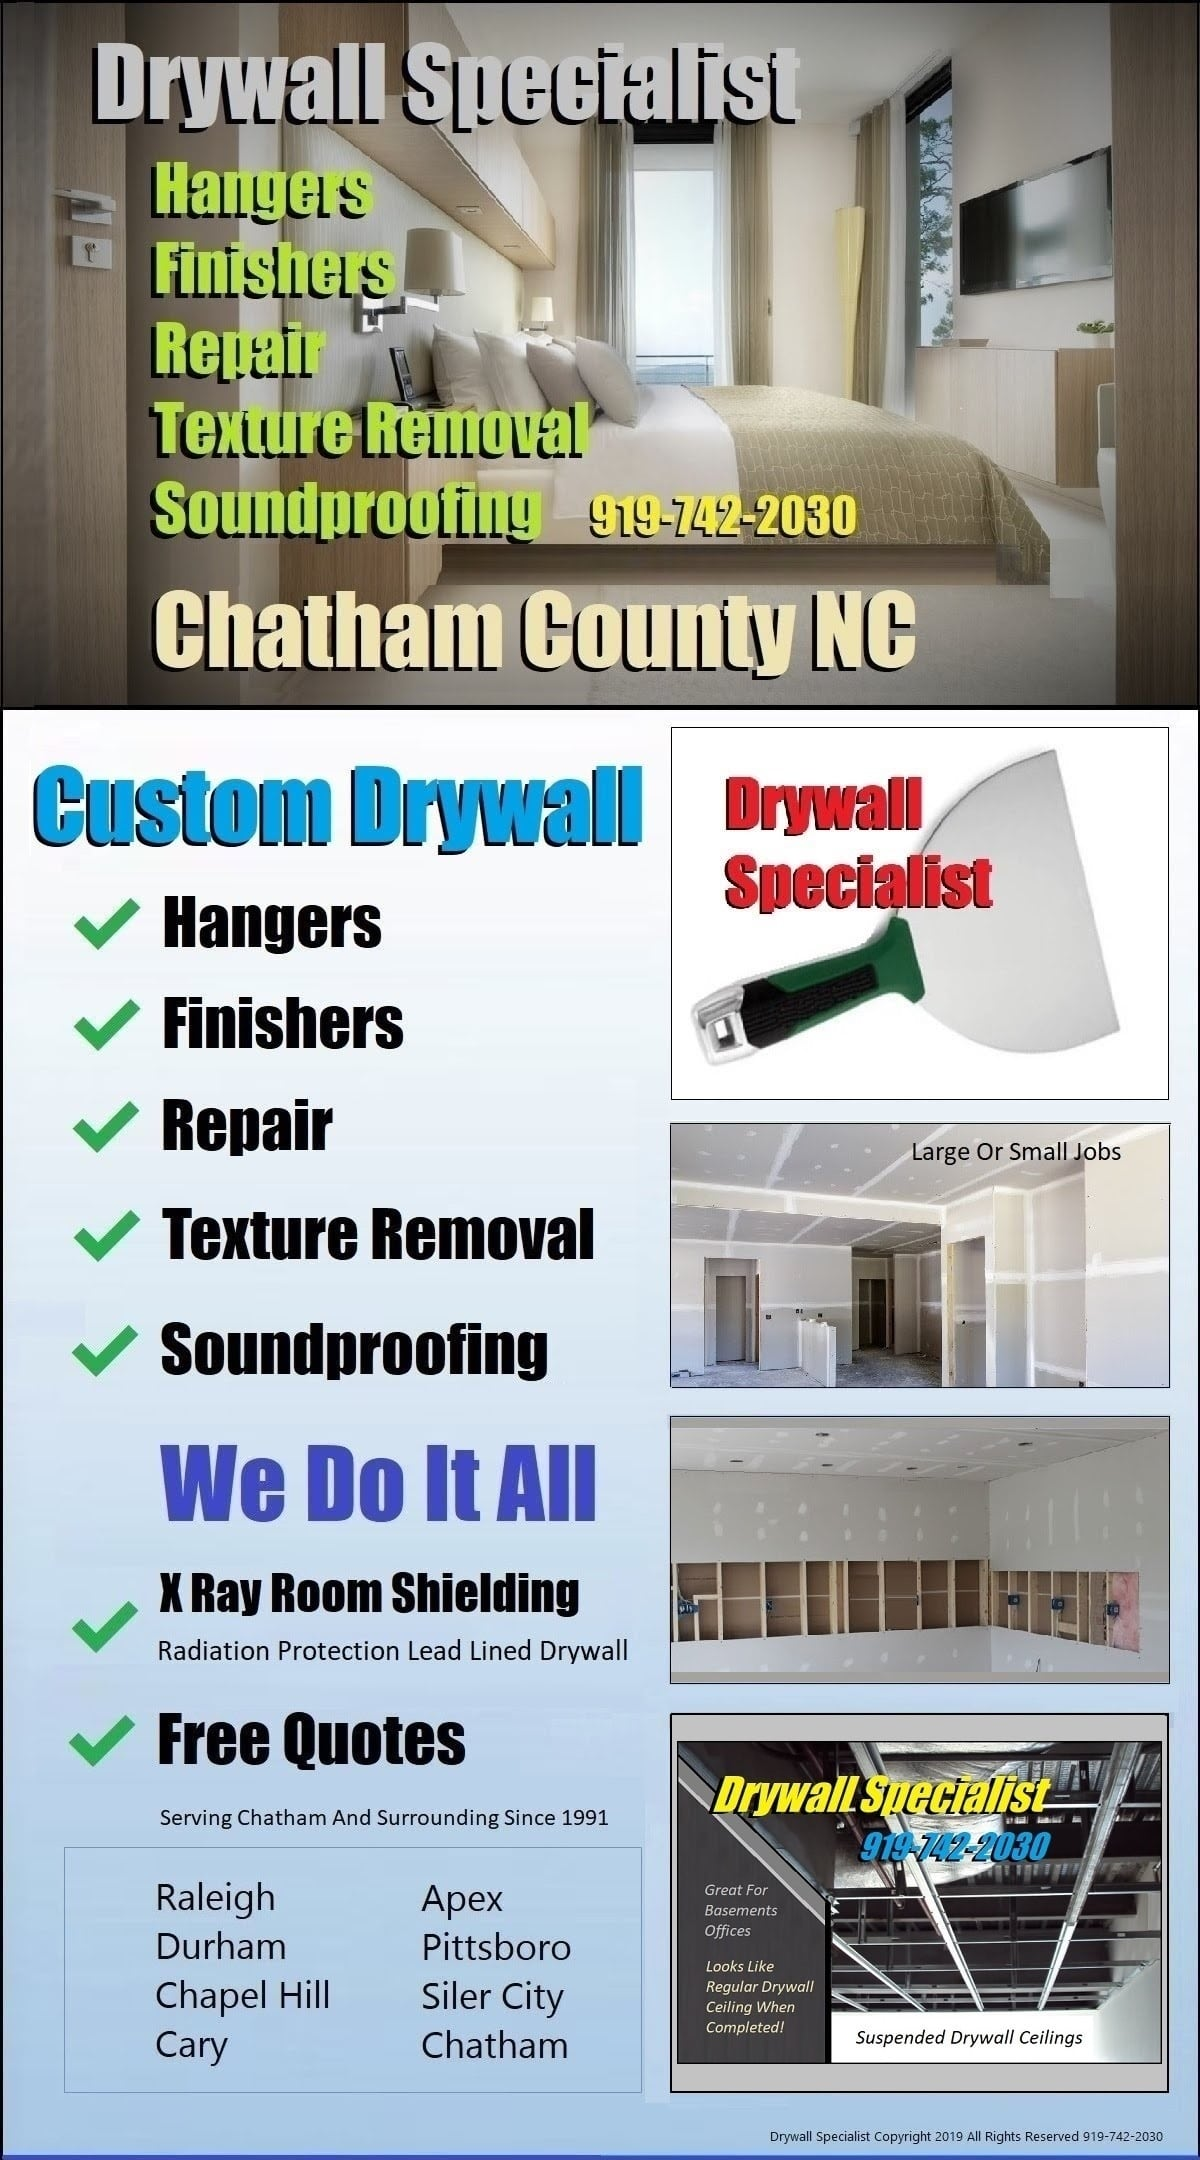 Nextdoor Wallboard Hanger Finisher Repair And Ceiling Texture Removal Soundproofing Contractor | North Carolina